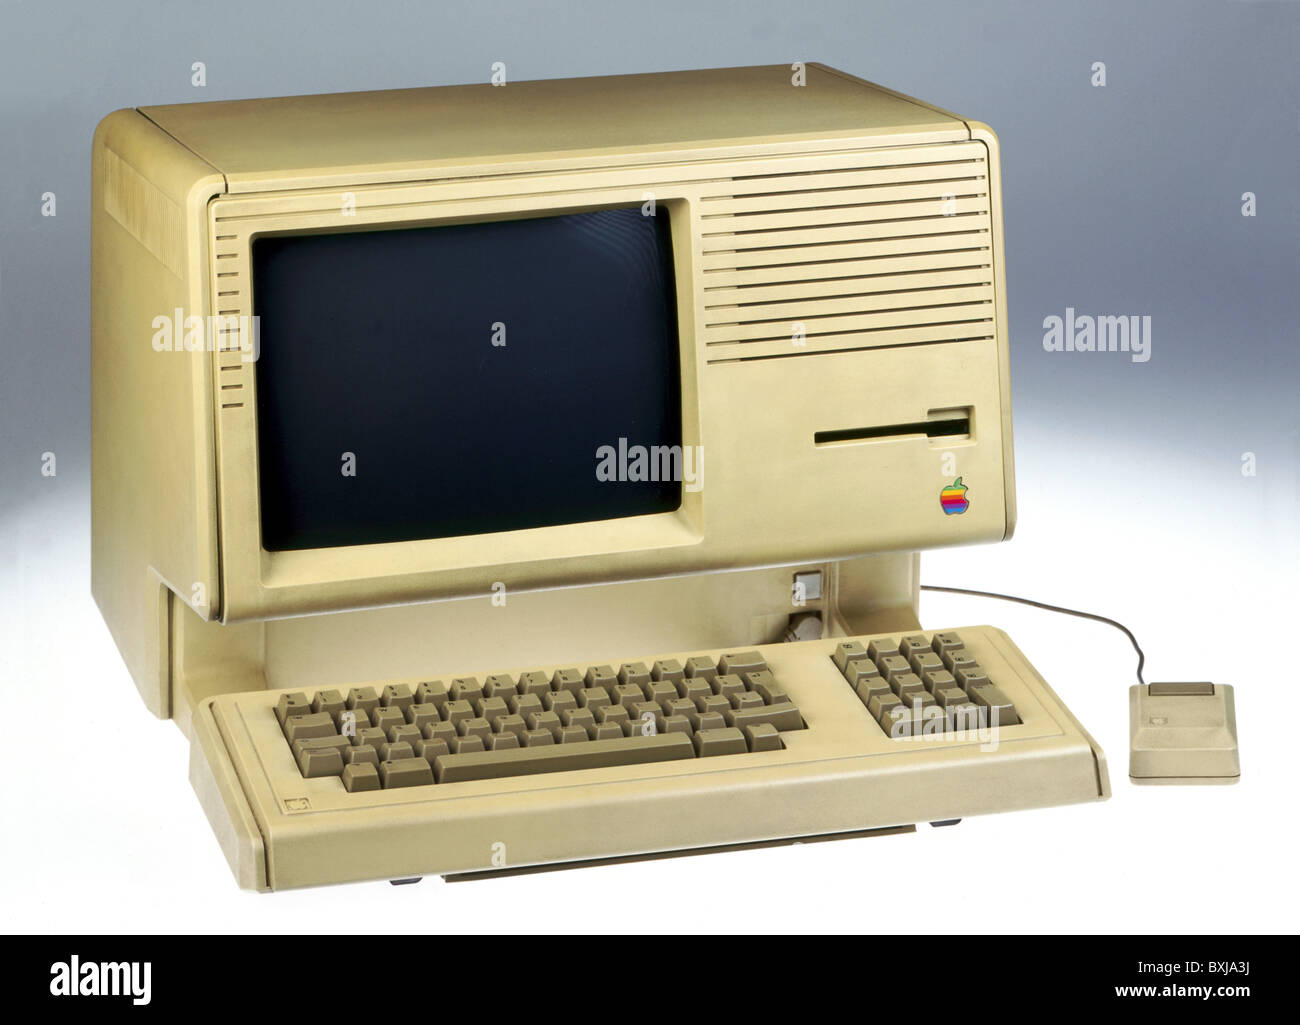 computing / electronics, computer Apple Lisa, first Personal Computer with graphical user interface and mouse, USA, - Stock Image